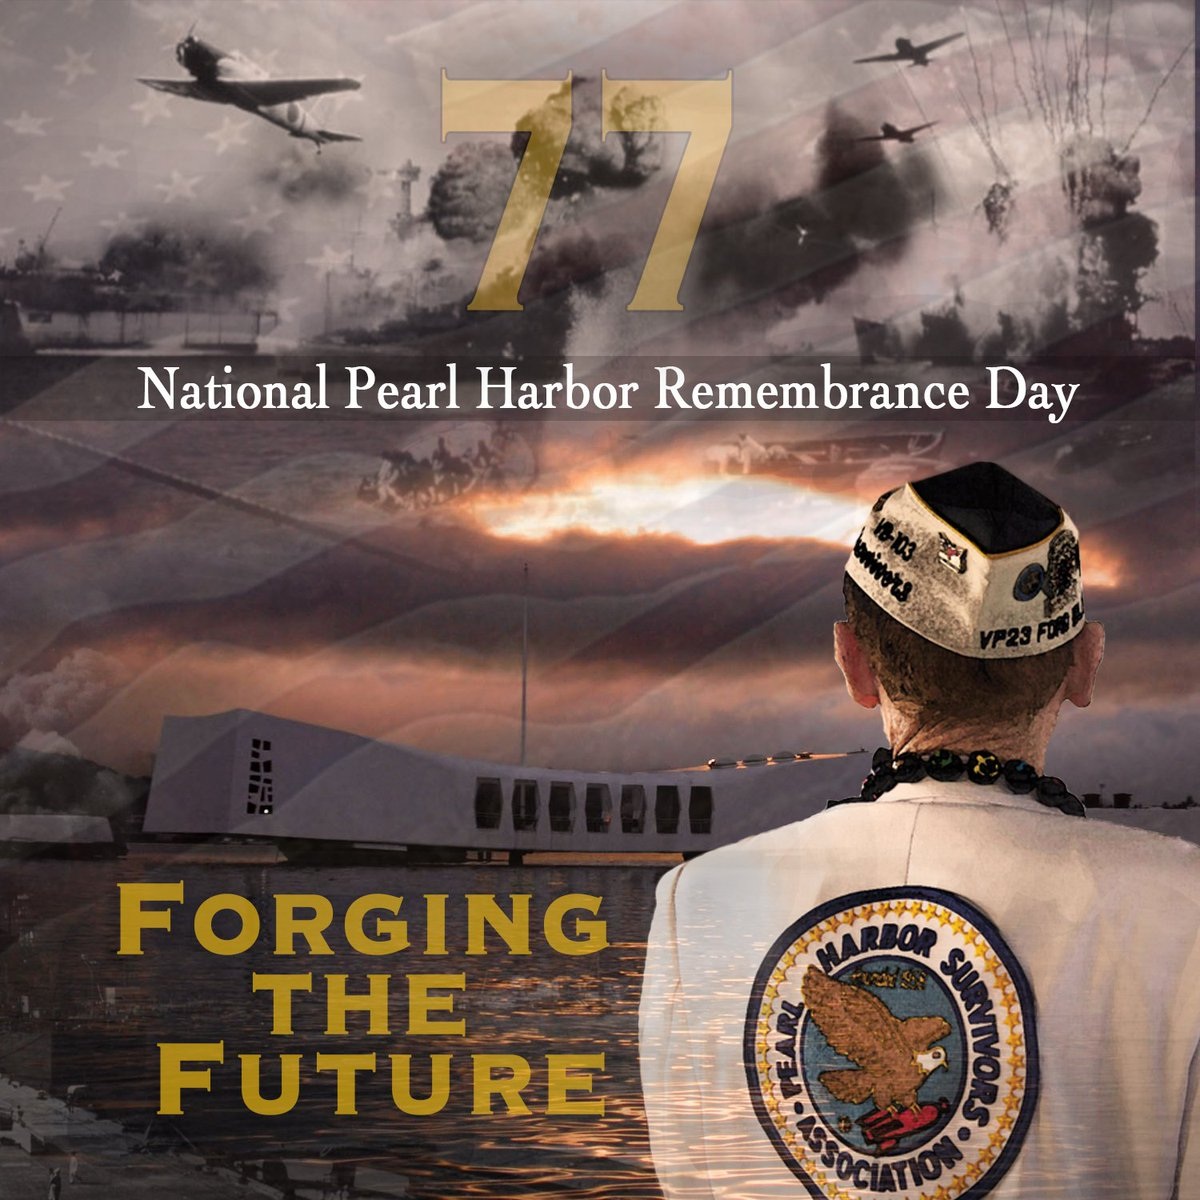 Today we reflect on the events of Dec. 7, 1941, honor those we lost, and thank all who fought in WWII to forge the peace, stability and prosperity that followed. #PearlHarbor77 #NeverForget